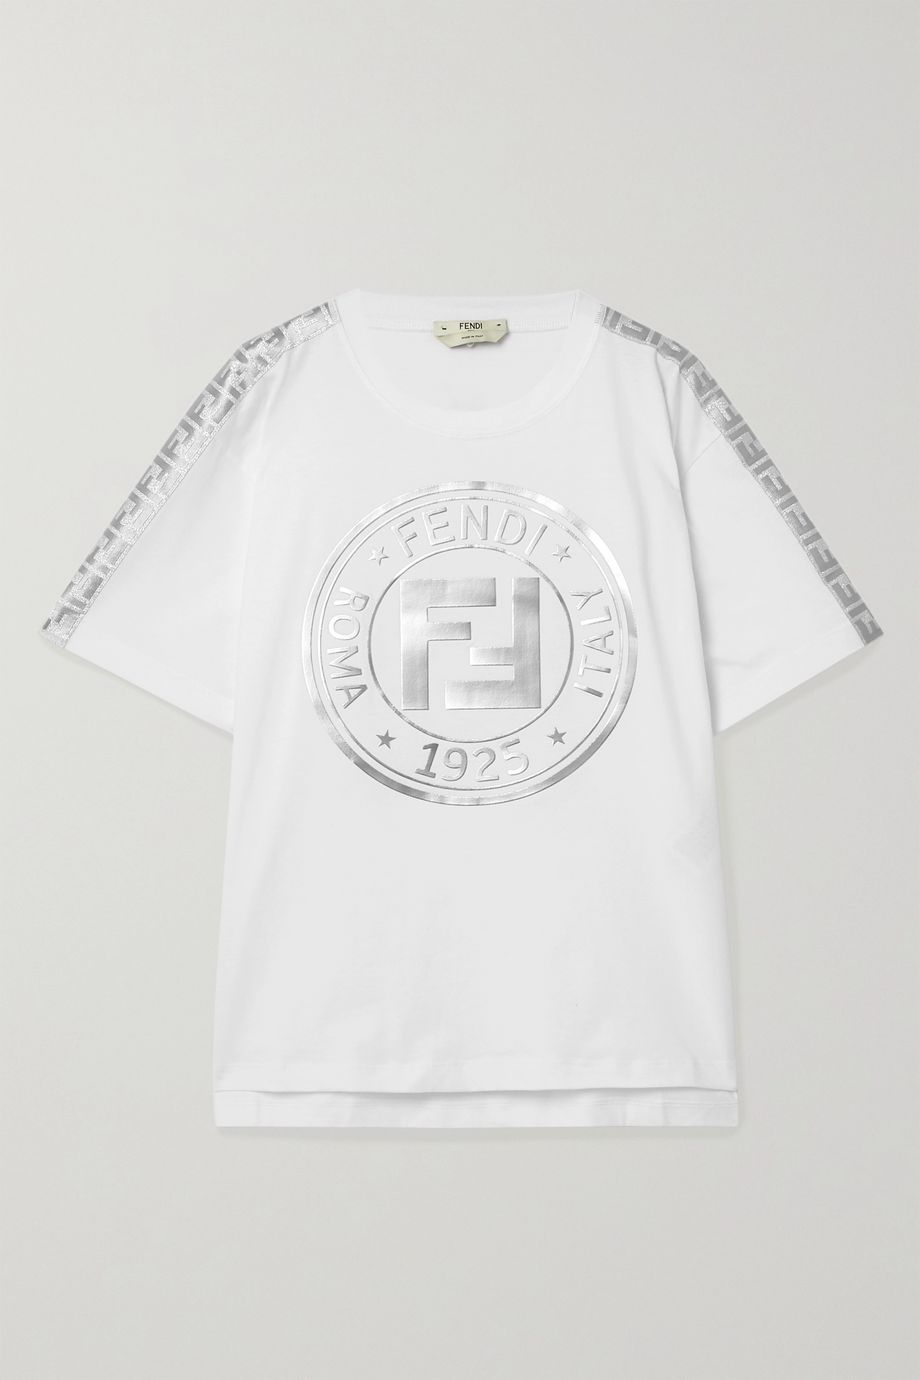 Fendi Fendirama oversized jacquard-trimmed printed cotton-jersey T-shirt